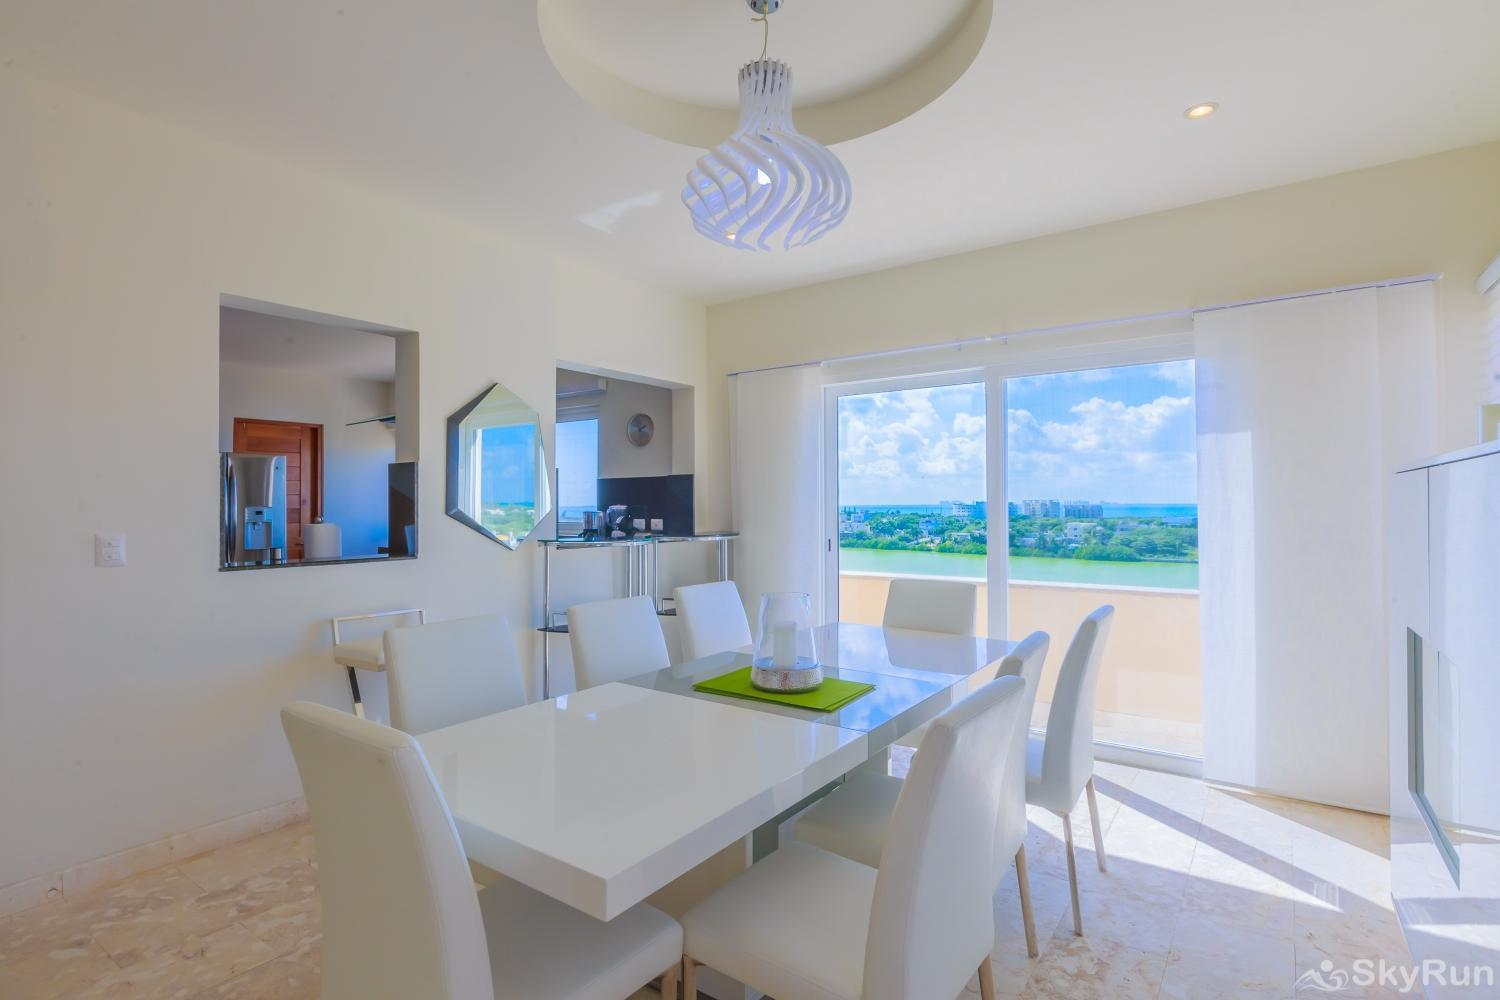 Oceanfront Penthouse | Isla Mujeres | Private Pool | Resort Amenities | Prime location | 3 bedroom | Oceanview Classy and modern dinning room